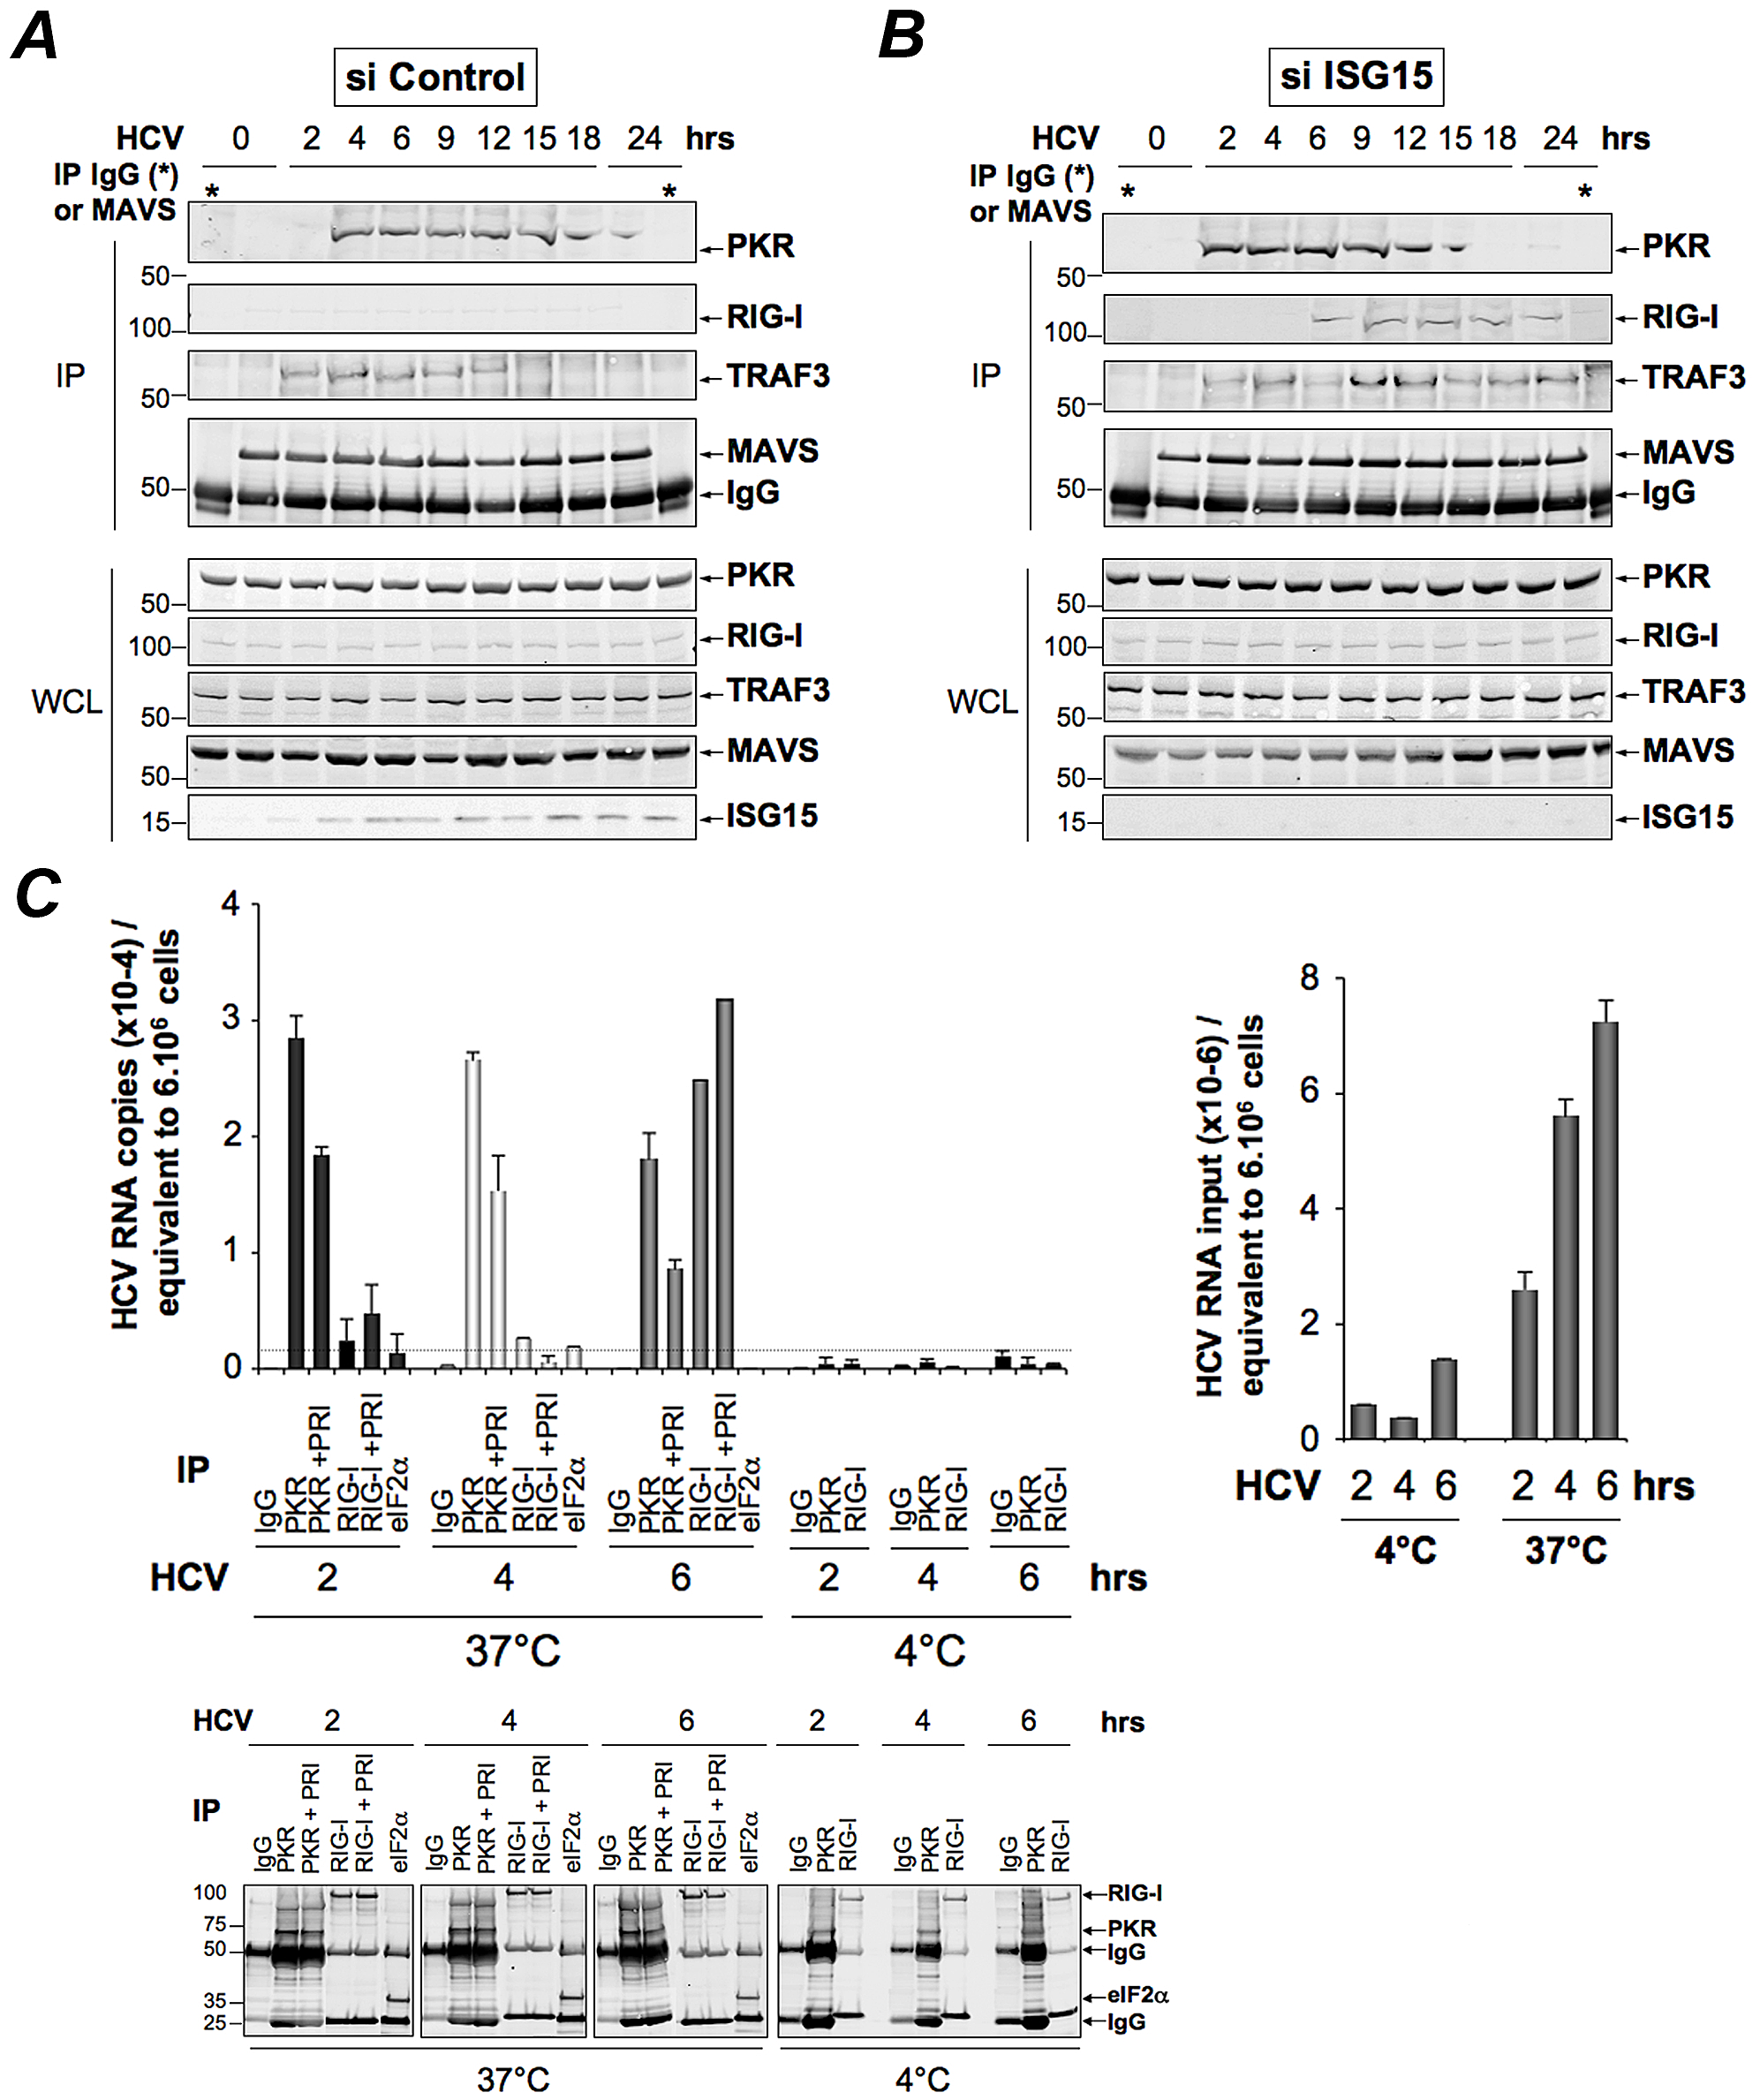 PKR both interacts with MAVS and TRAF3 and binds HCV RNA ahead of RIG-I.